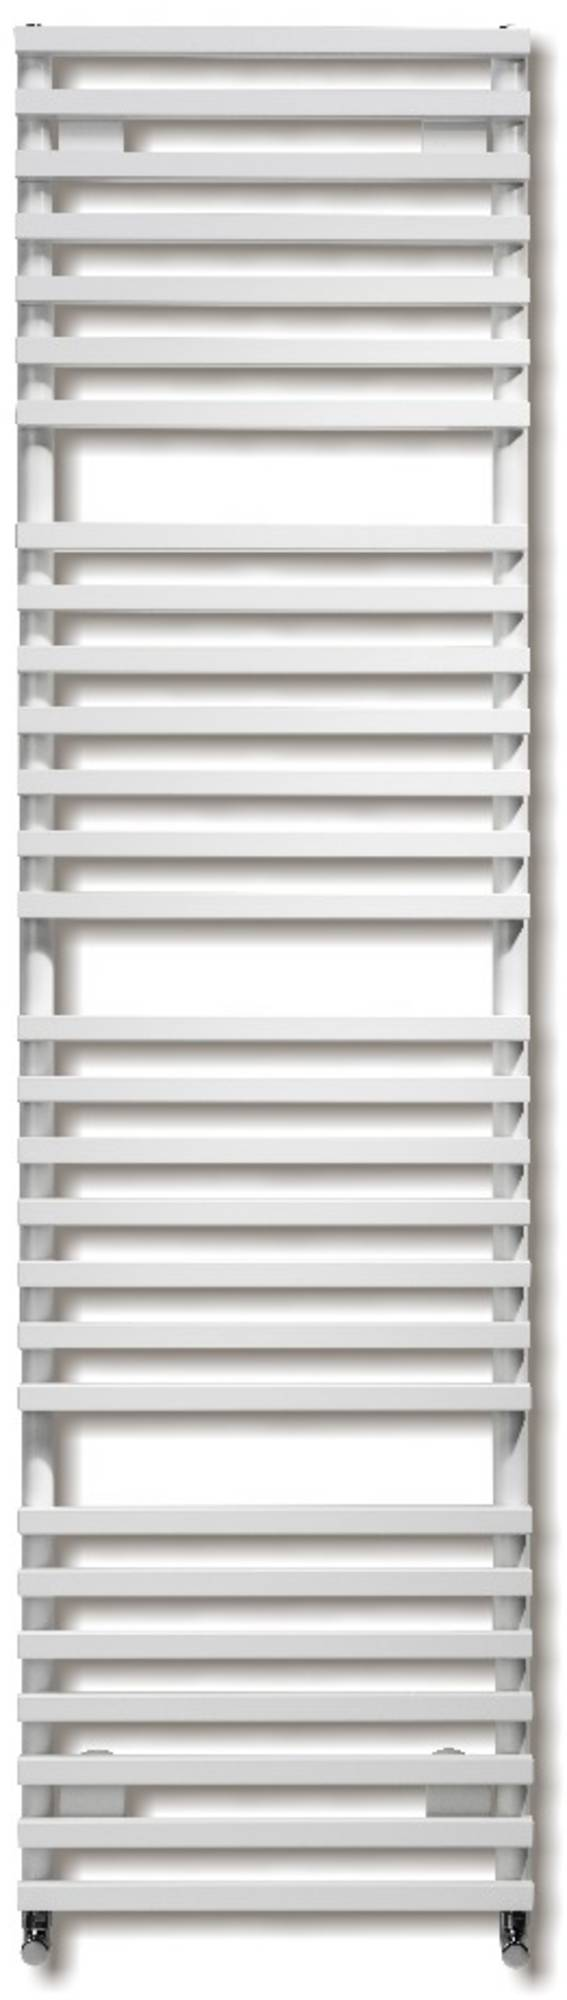 Vasco Bathline bc design radiator 600x1345 n21 830w 0018, wit ral 9016